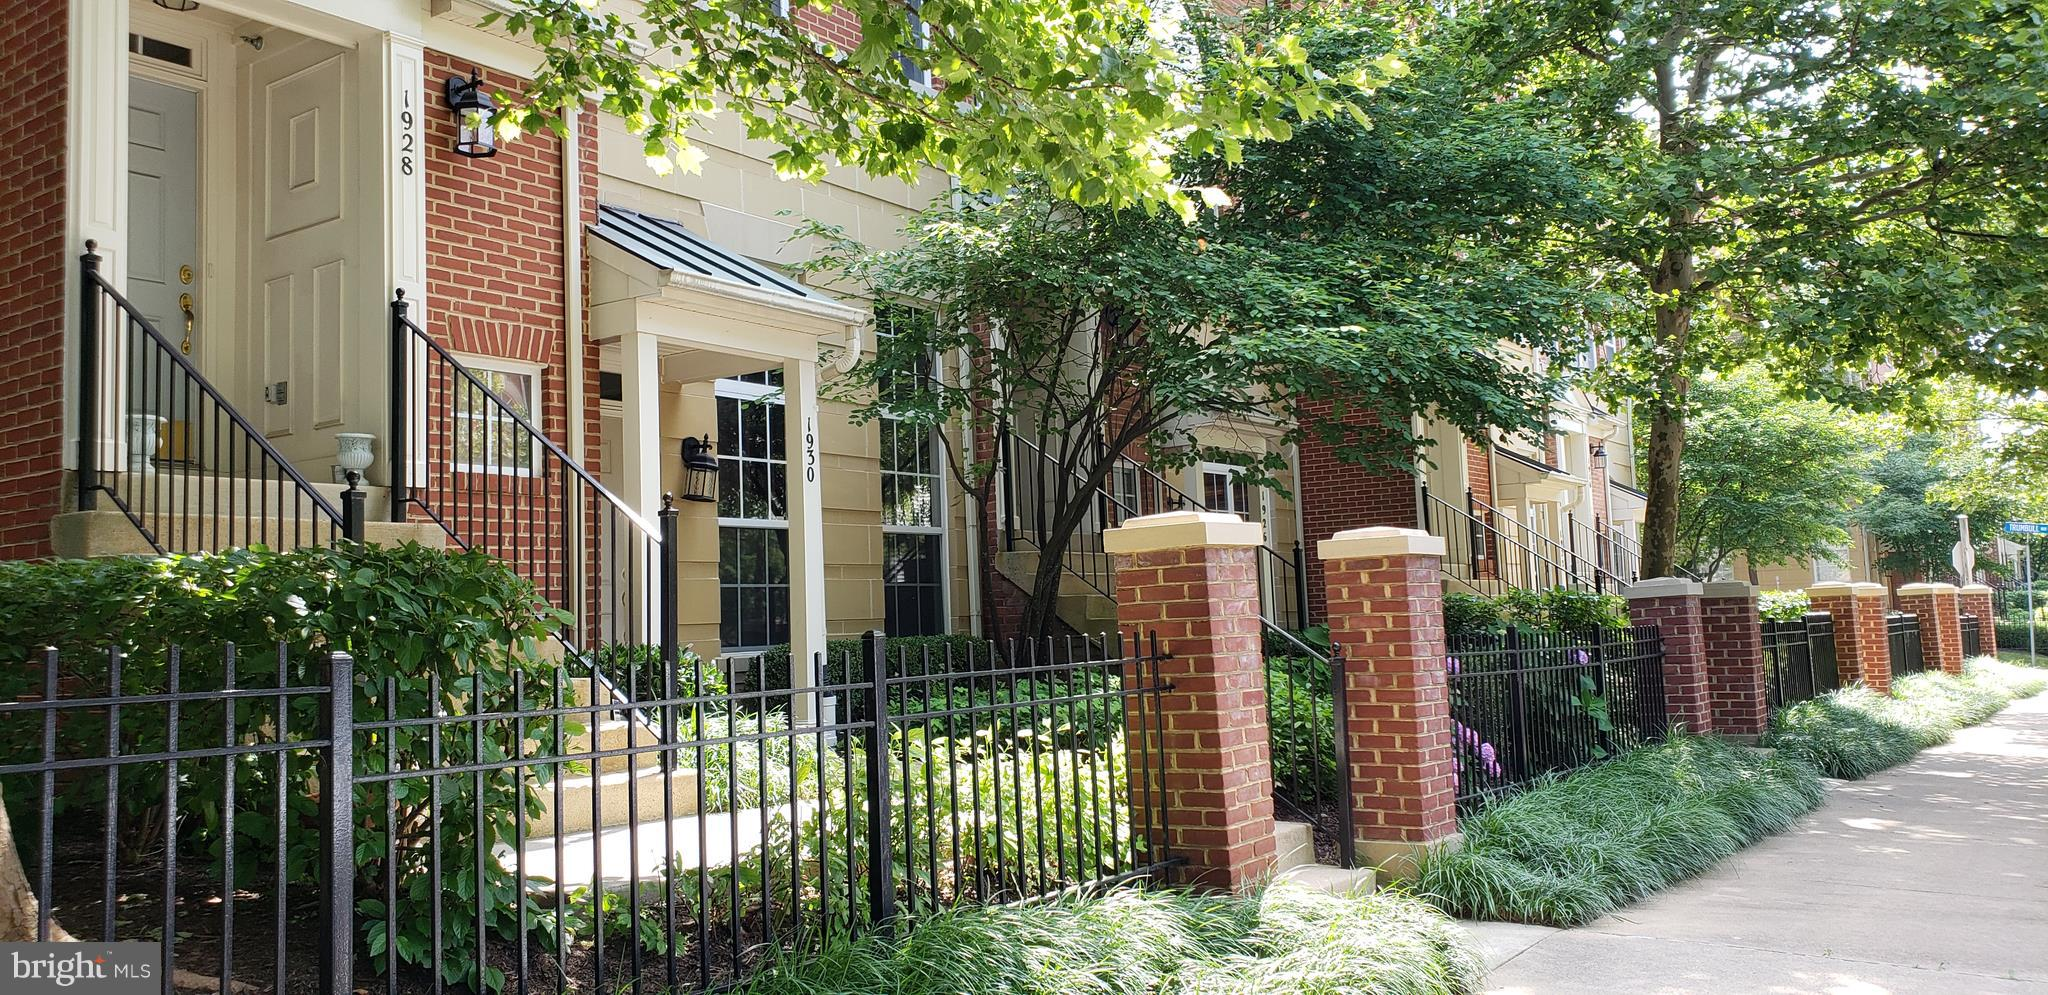 FURNISHED ...4 Level Brick Townhouse available for Rent -  Location can't be beat! Walk to Reston Town Center, Restaurants, Shops, Entertainment &/or Work?    3 Spacious Bedrooms / 2.5 Bath -  Great Potential as a Corporate Rental- Will consider multi year lease.  Amenities include:  2 Story Formal Living Room; Walls of Windows; Hardwood Flooring on 2nd Level;  3 Sided Gas Fireplace shared by Family Room, Kitchen and Dining Areas.  Spacious Master Bedroom/ Vaulted Ceilings- 2 Walk In Closets/ Dual vanities/ Spa Tub/ Glass Shower enclosure. Easy Access  Laundry on Bedroom Level.   Step onto Exterior Deck off Kitchen for fresh air.  Are you a  Car Enthusiast?... there is Multi Car Parking in front and rear of unit (private spaces) as well as a 1 car attached Garage.  For Outdoorsy Persons: Convenient W O & D Bike/ Run/Walk trail behind unit, Community Pool and Clubhouse/Fitness Center all steps away.  Sorry... No Pets; No Smoking.  Unit Available Dec 15th or after... Deposits required:  $55  per person application fee/ $3450 ( certified funds) first Months Rent/ $3450 Security Deposit.    If Interested call Nan - ReMax at 703-399-1266 for more details and information.